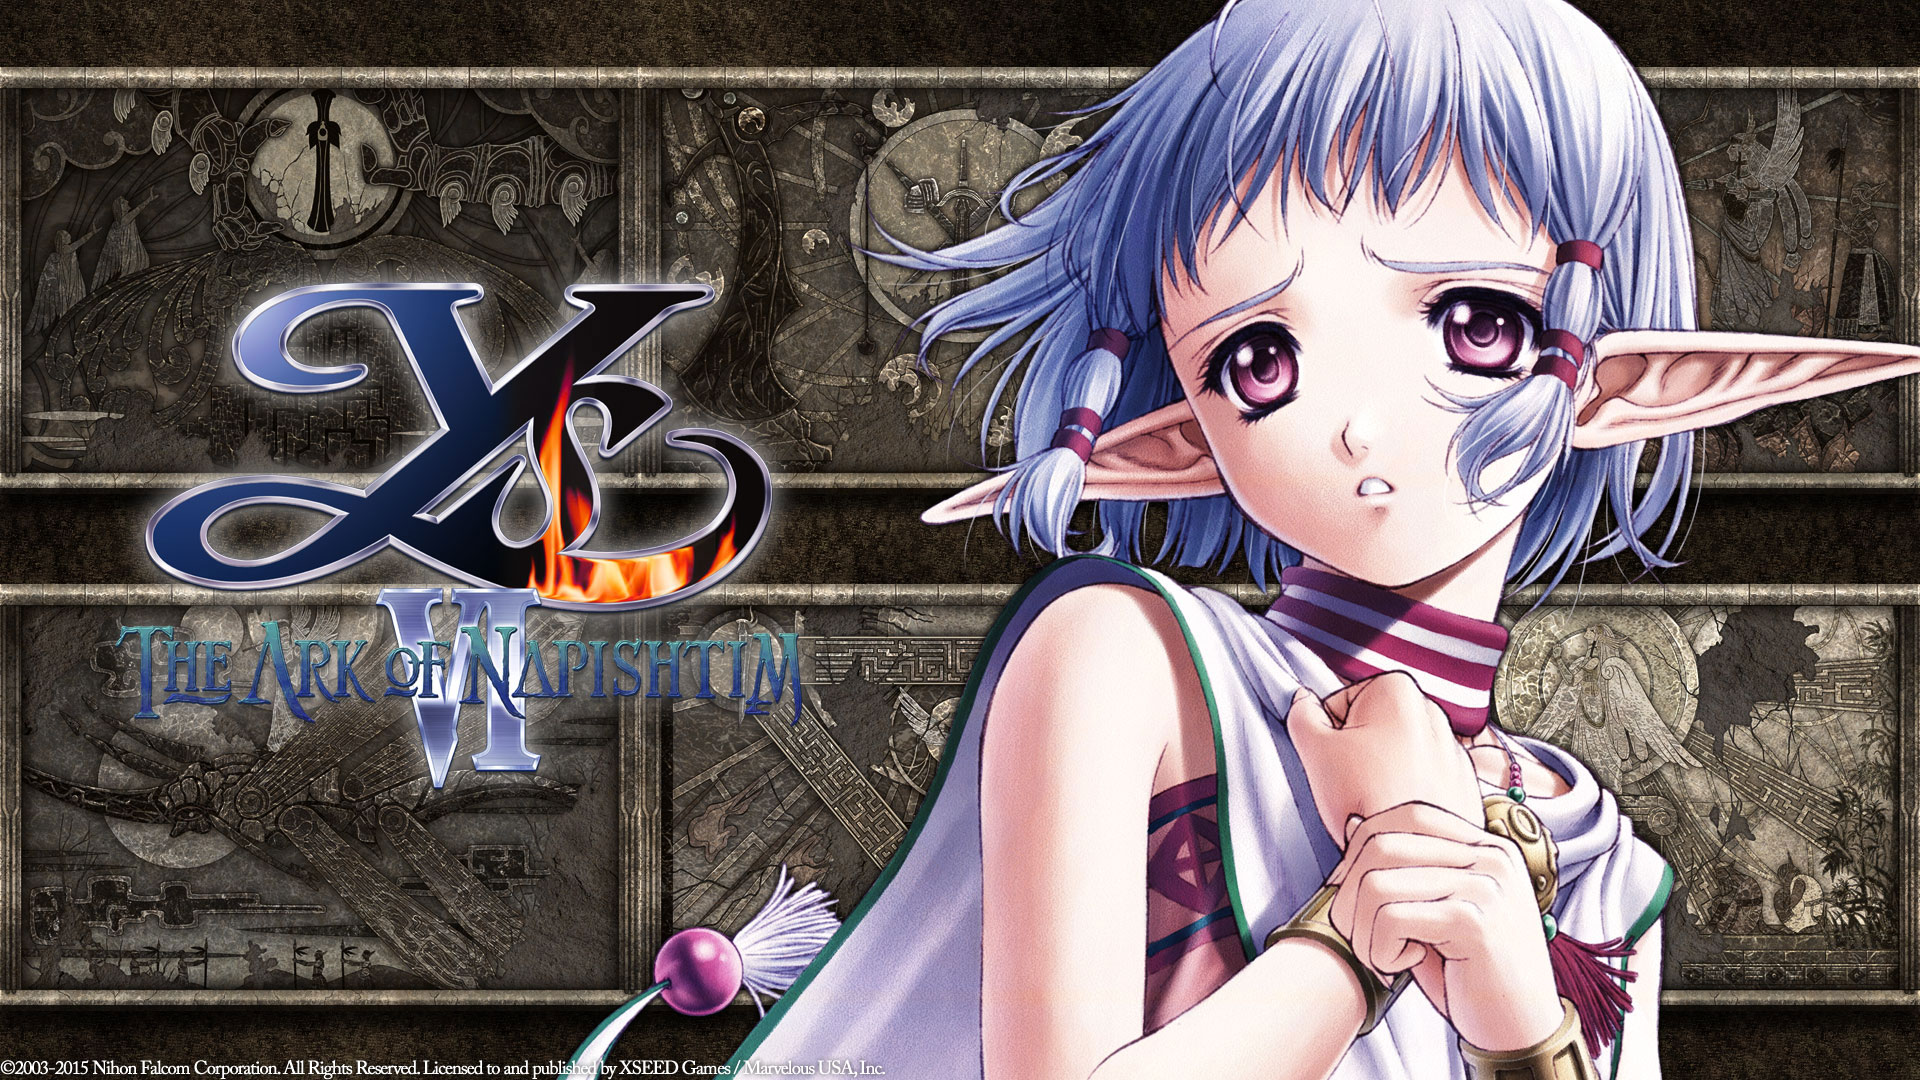 Ys VI The Ark of Napishtim Wallpaper 021